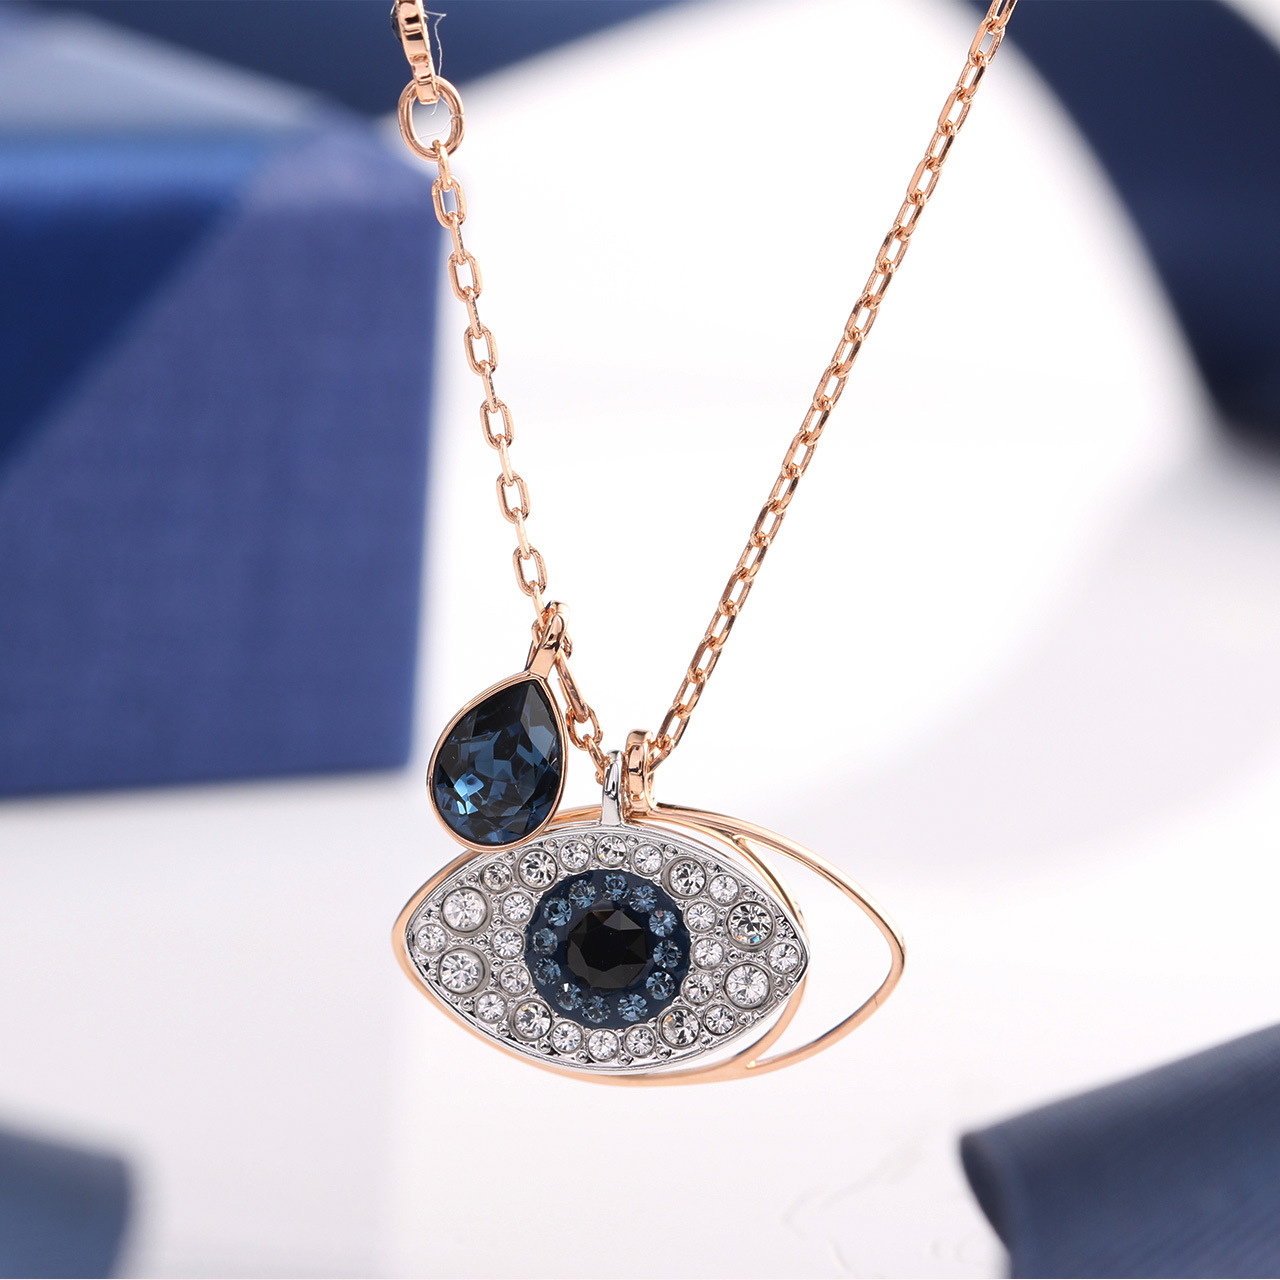 Slick Alloy Necklace for Adding Elegance to Outfits